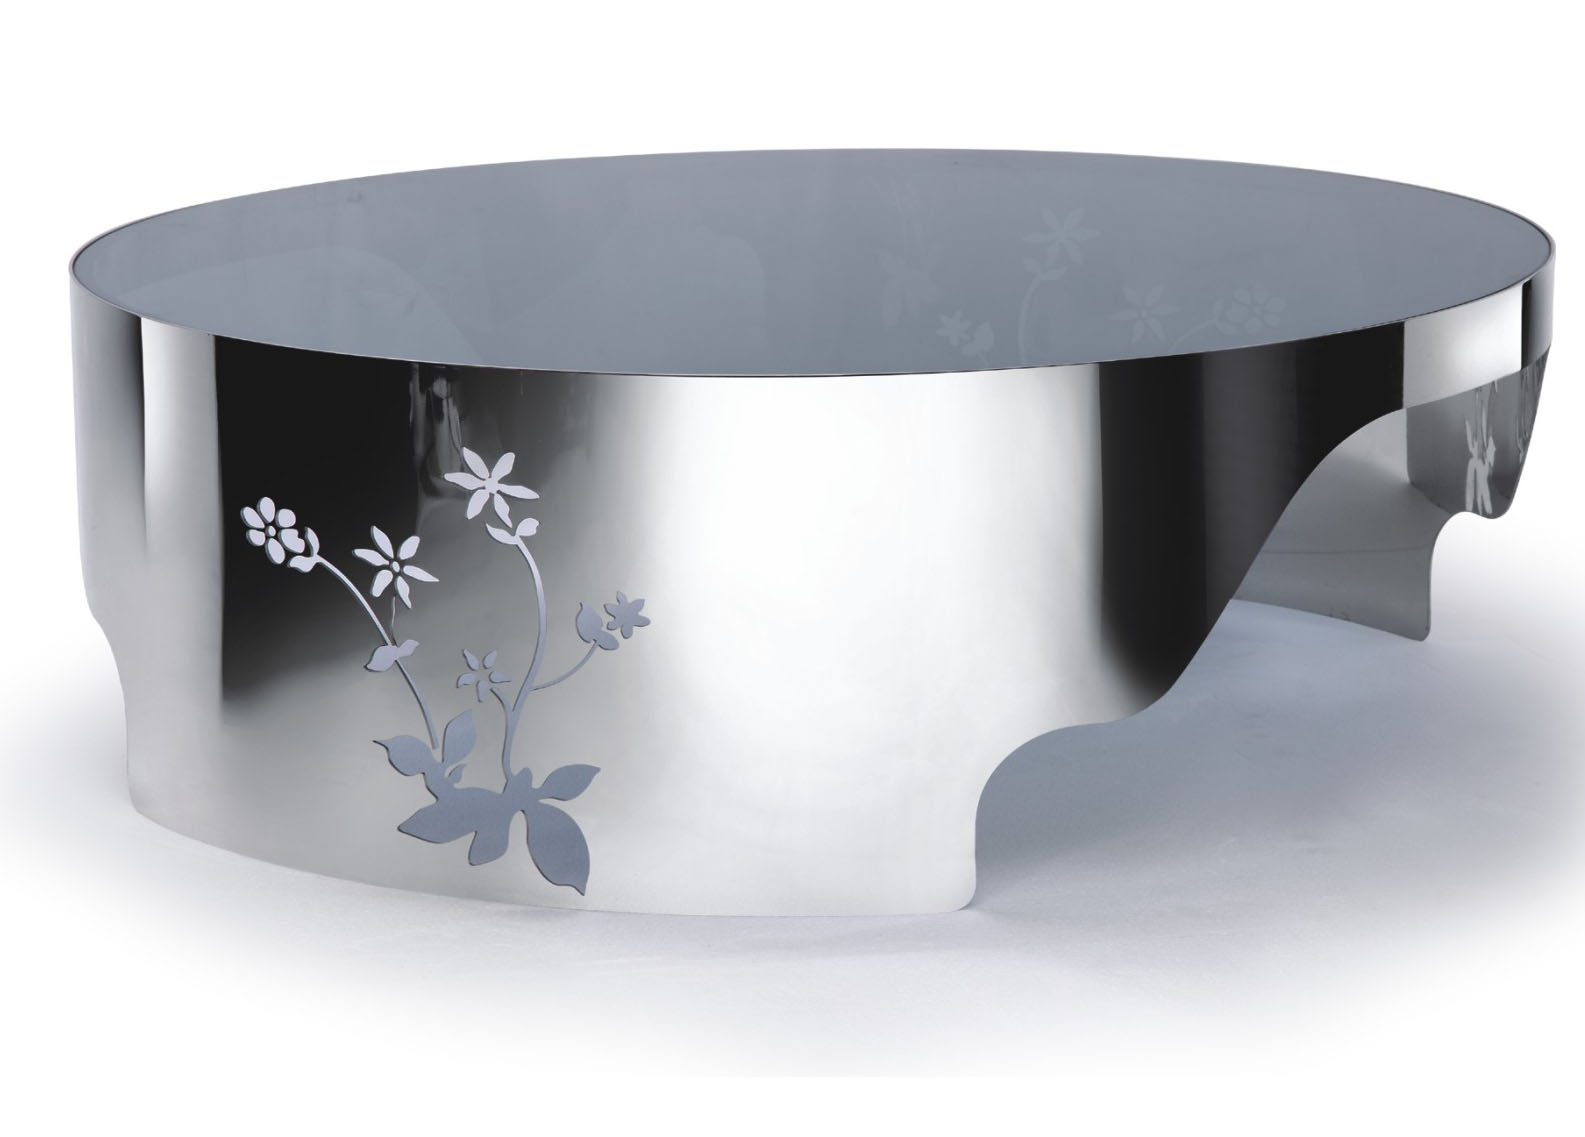 Modern Designer Large Round Coffee Table Glass Top Stainless Steel 119 Ebay